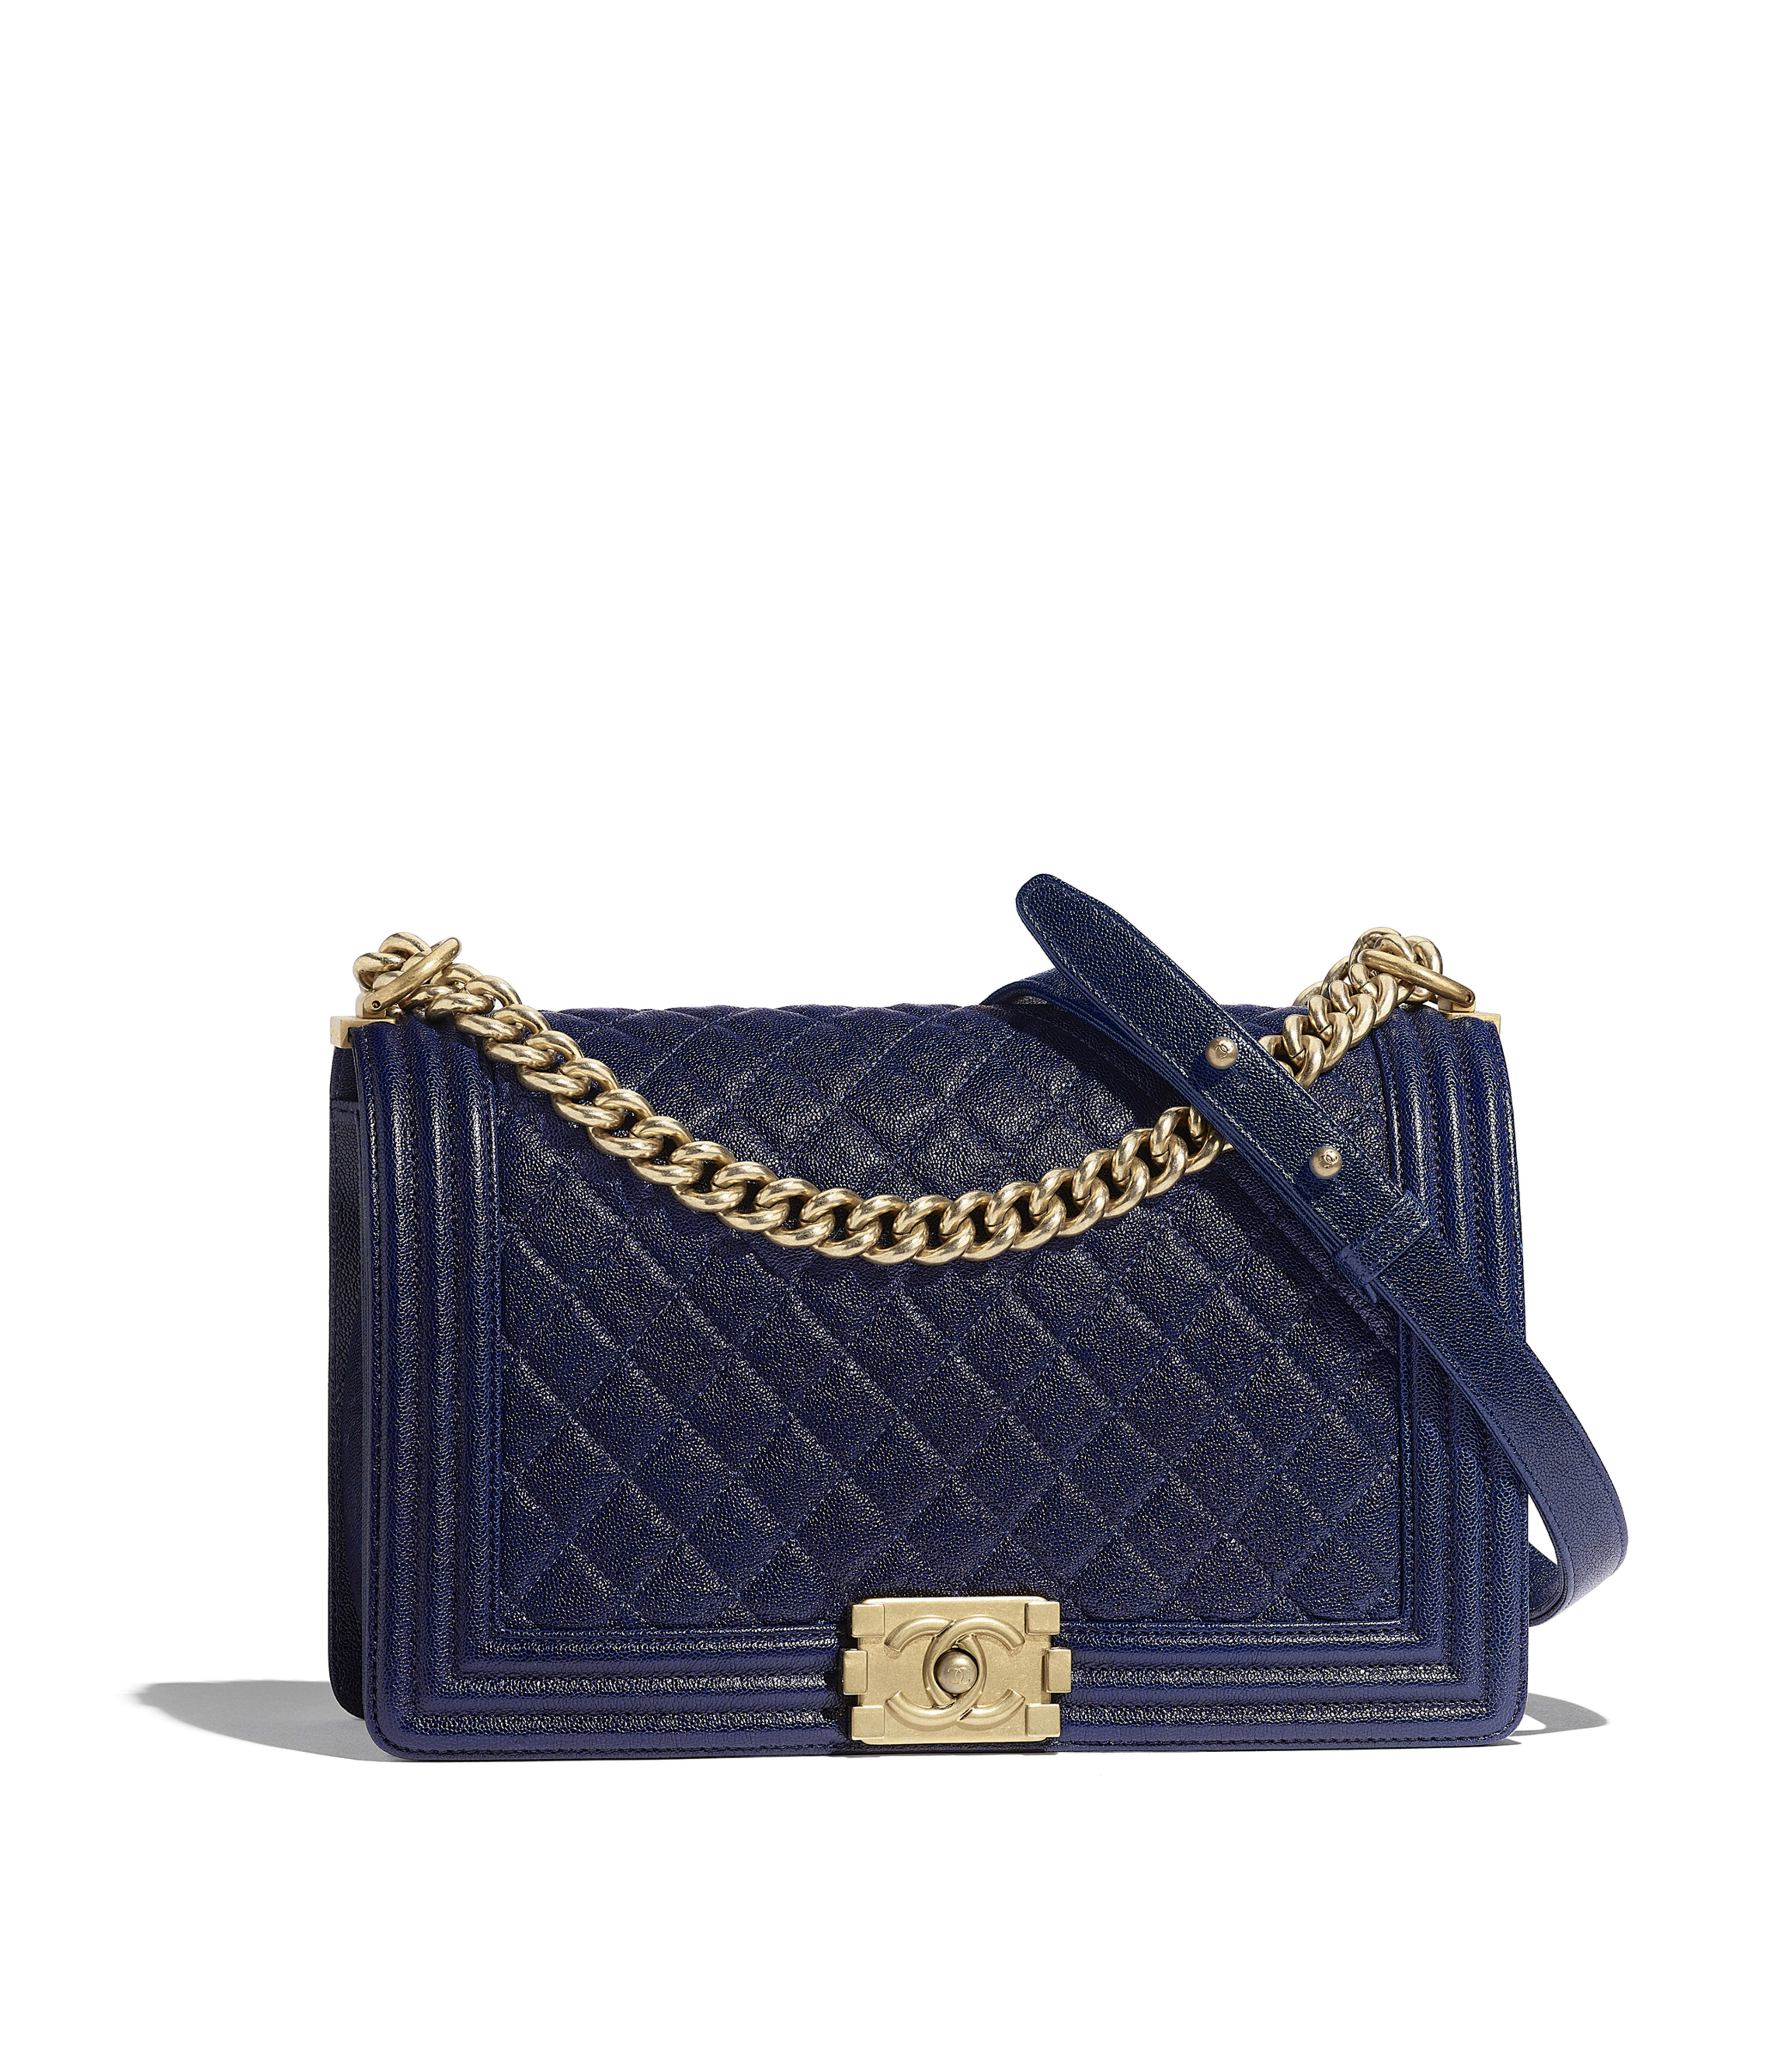 Large Boy Chanel Handbag Grained Calfskin Gold Tone Metal Blue Ref A92193y836215b658